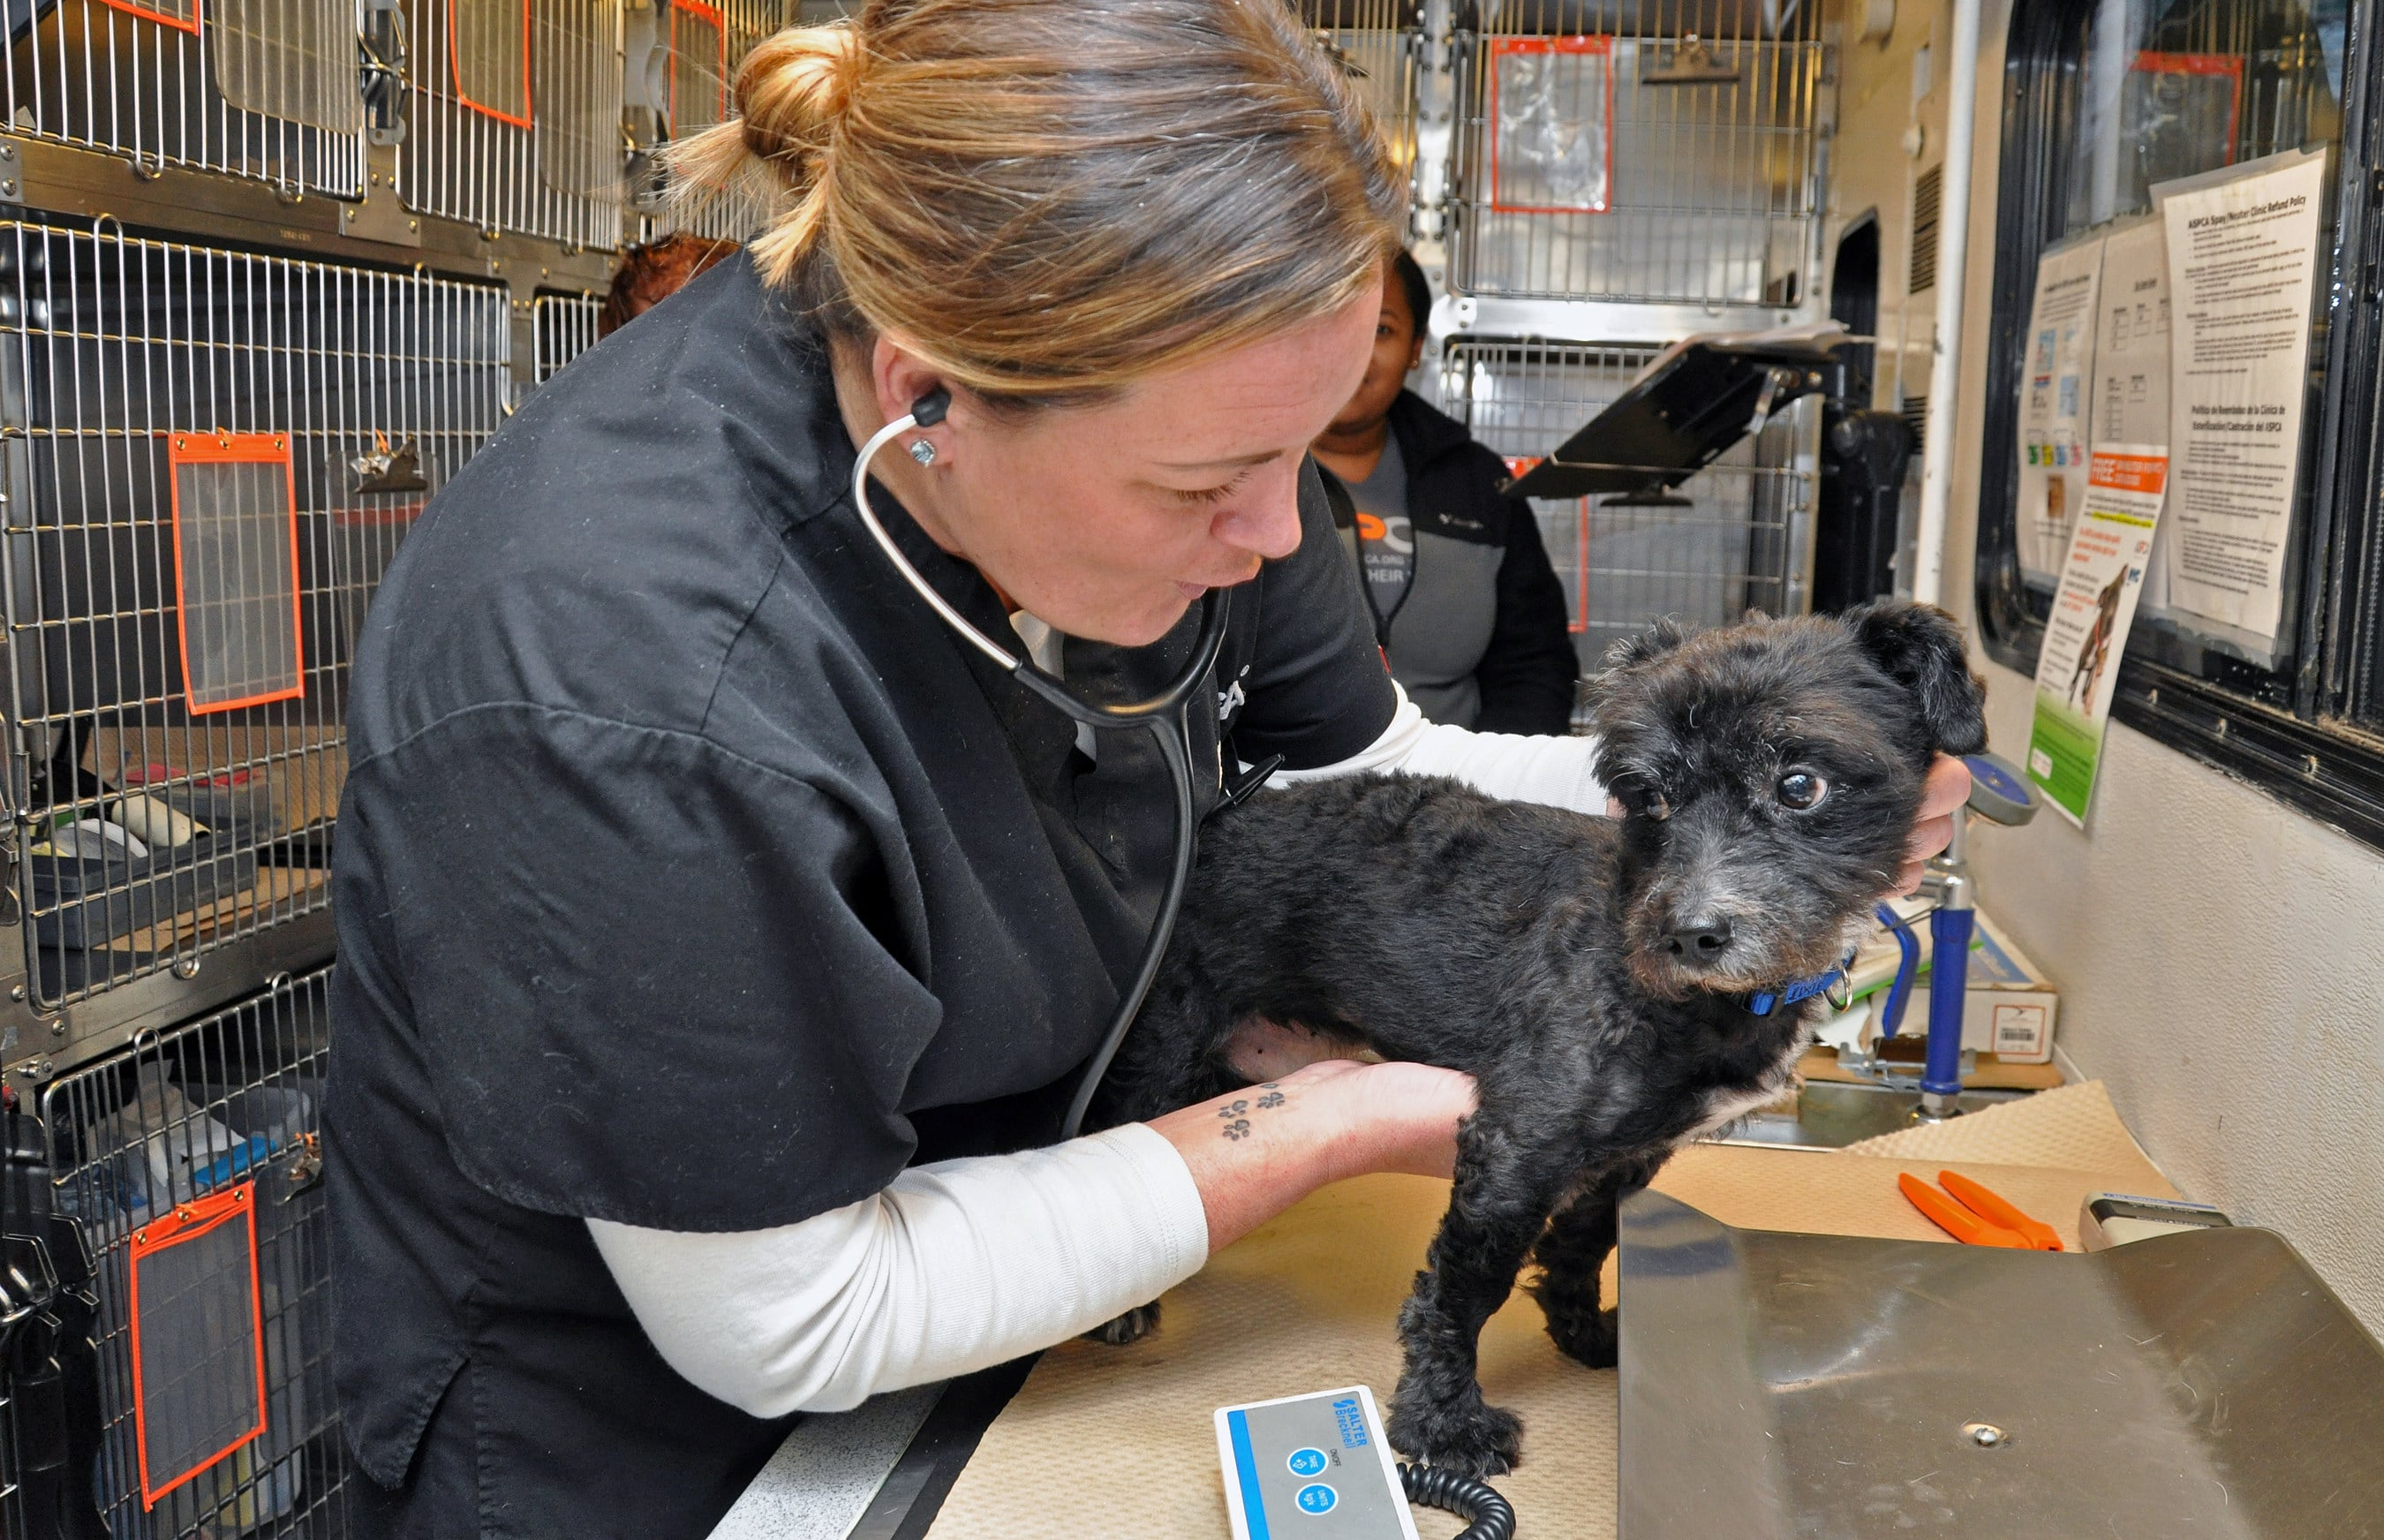 ASPCA announces $45 million commitment to help animal cruelty victims and low-income pet owners